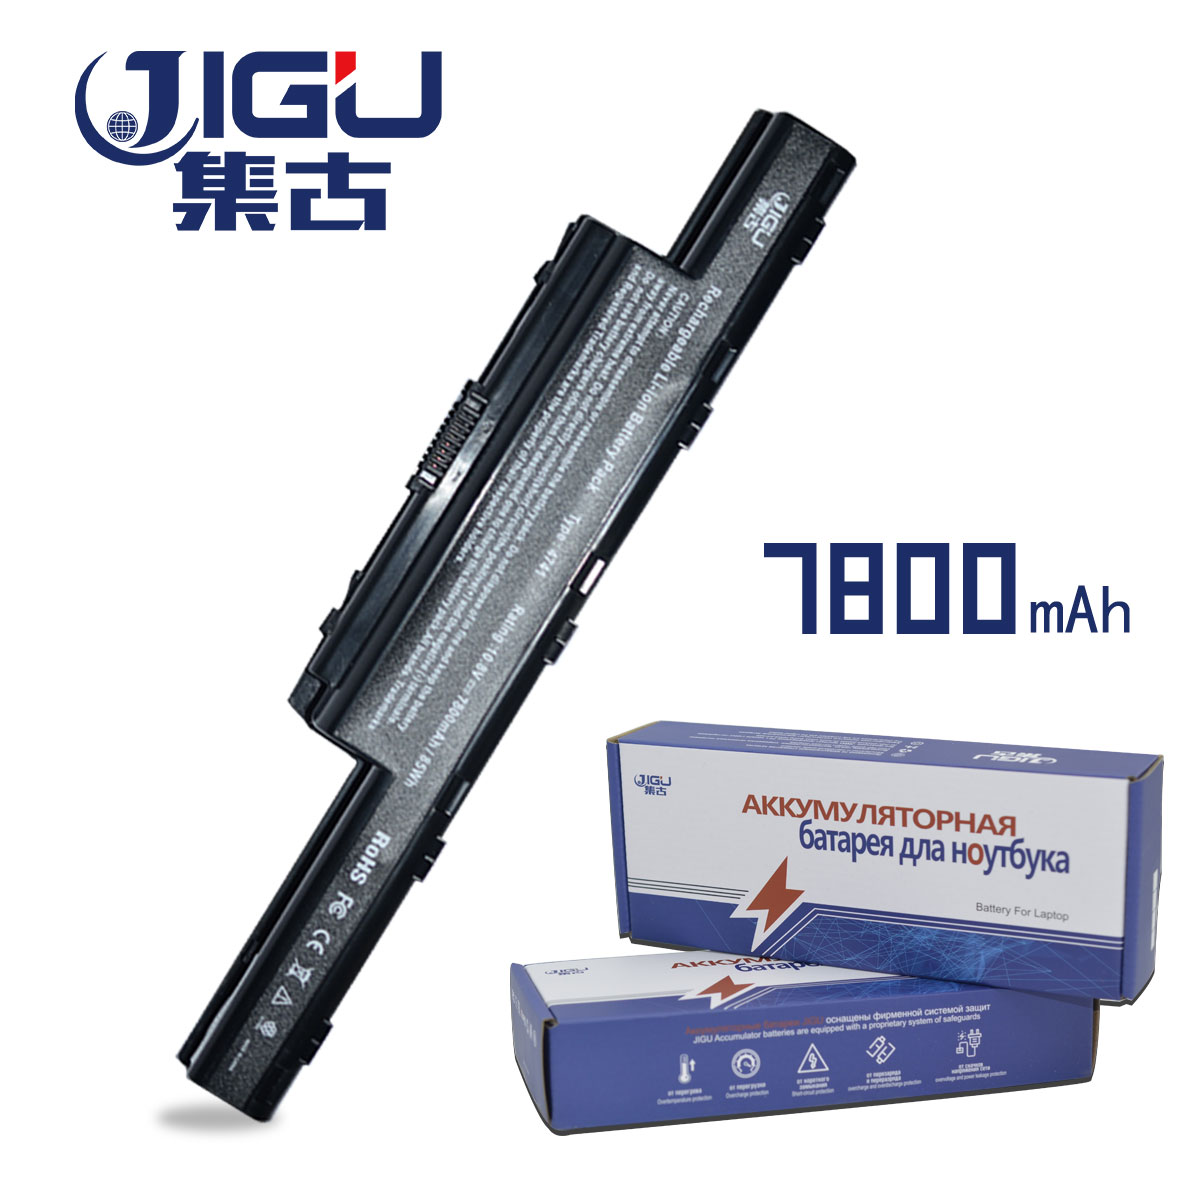 JIGU 7750g NEW Laptop Battery For Acer Aspire V3 V3-471G V3-551G V3-571G V3-771G E1 E1-421 E1-431 E1-471 E1-531 E1-571 Series richbit ebike new 21 speeds electric fat tire bike 48v 1000w lithium battery electric snow bike 17ah powerful electric bicycle